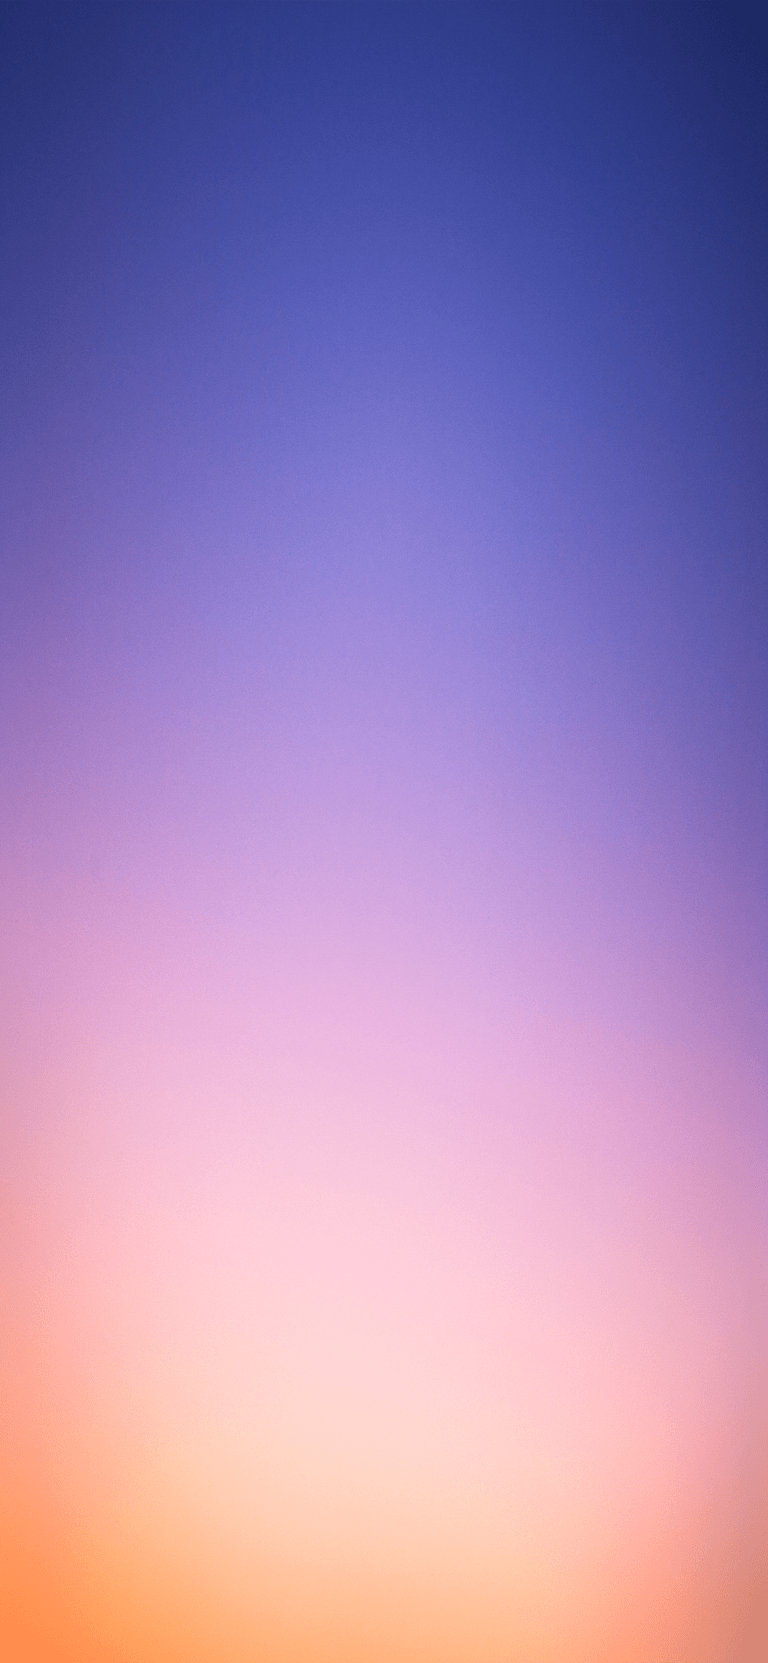 original iphone wallpapers download